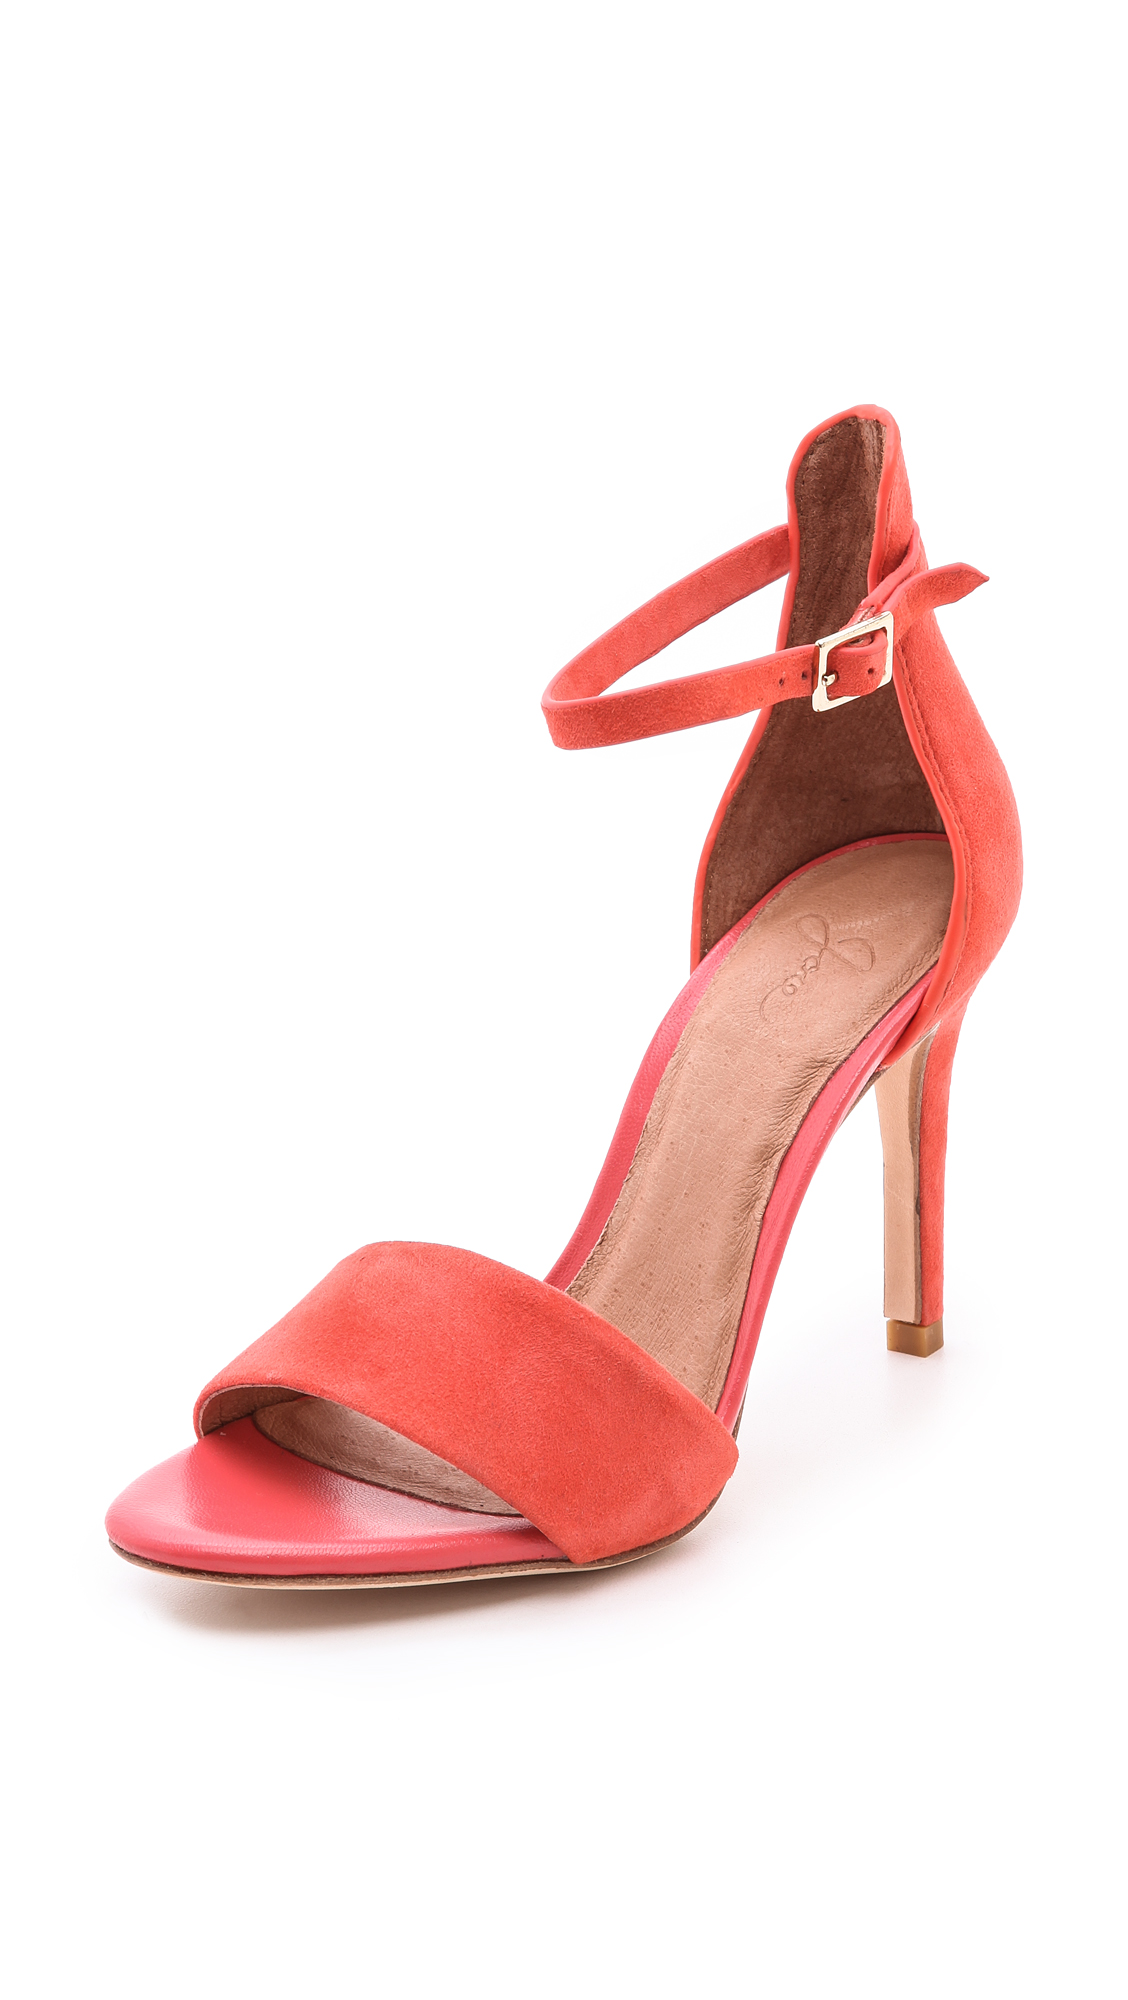 Joie Jaclyn Suede Sandals In Orange Coral Lyst